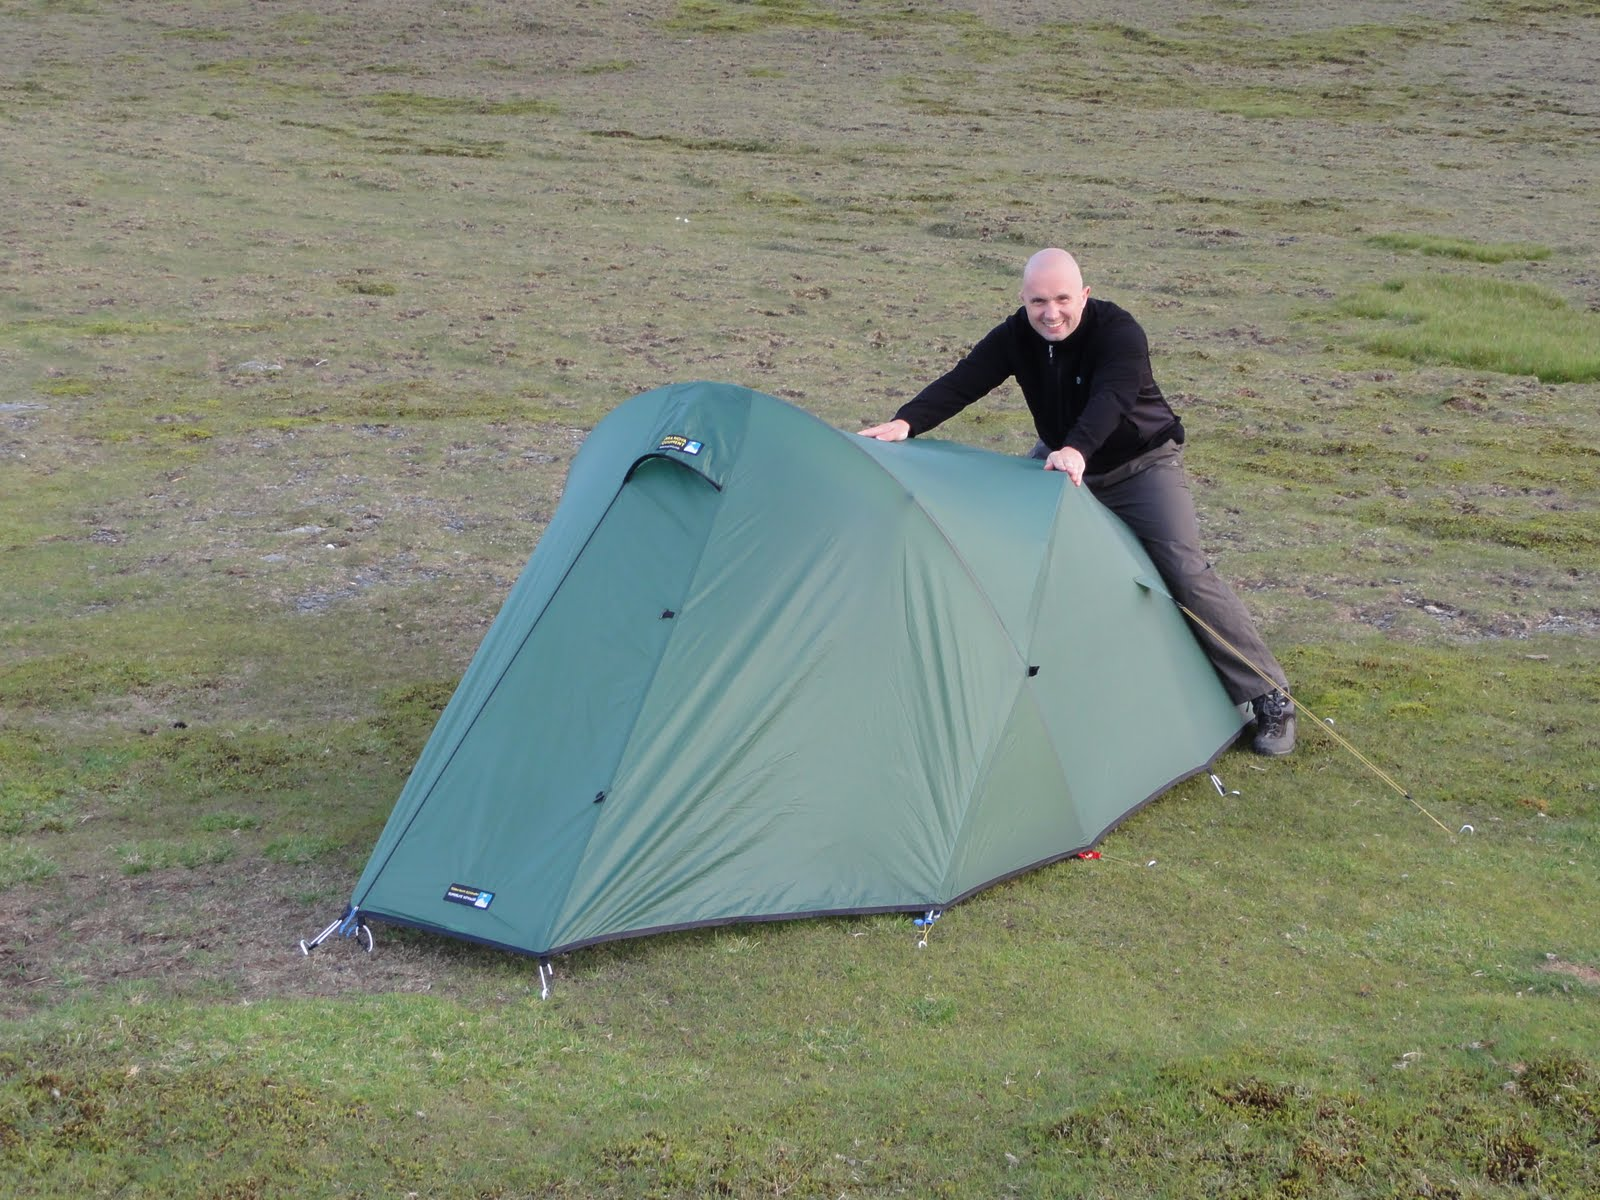 Terry Nova Voyager Superlite so good youu0027ll want to f**k it. & Wild Camping: Terra Nova Voyager Superlite Blencathra